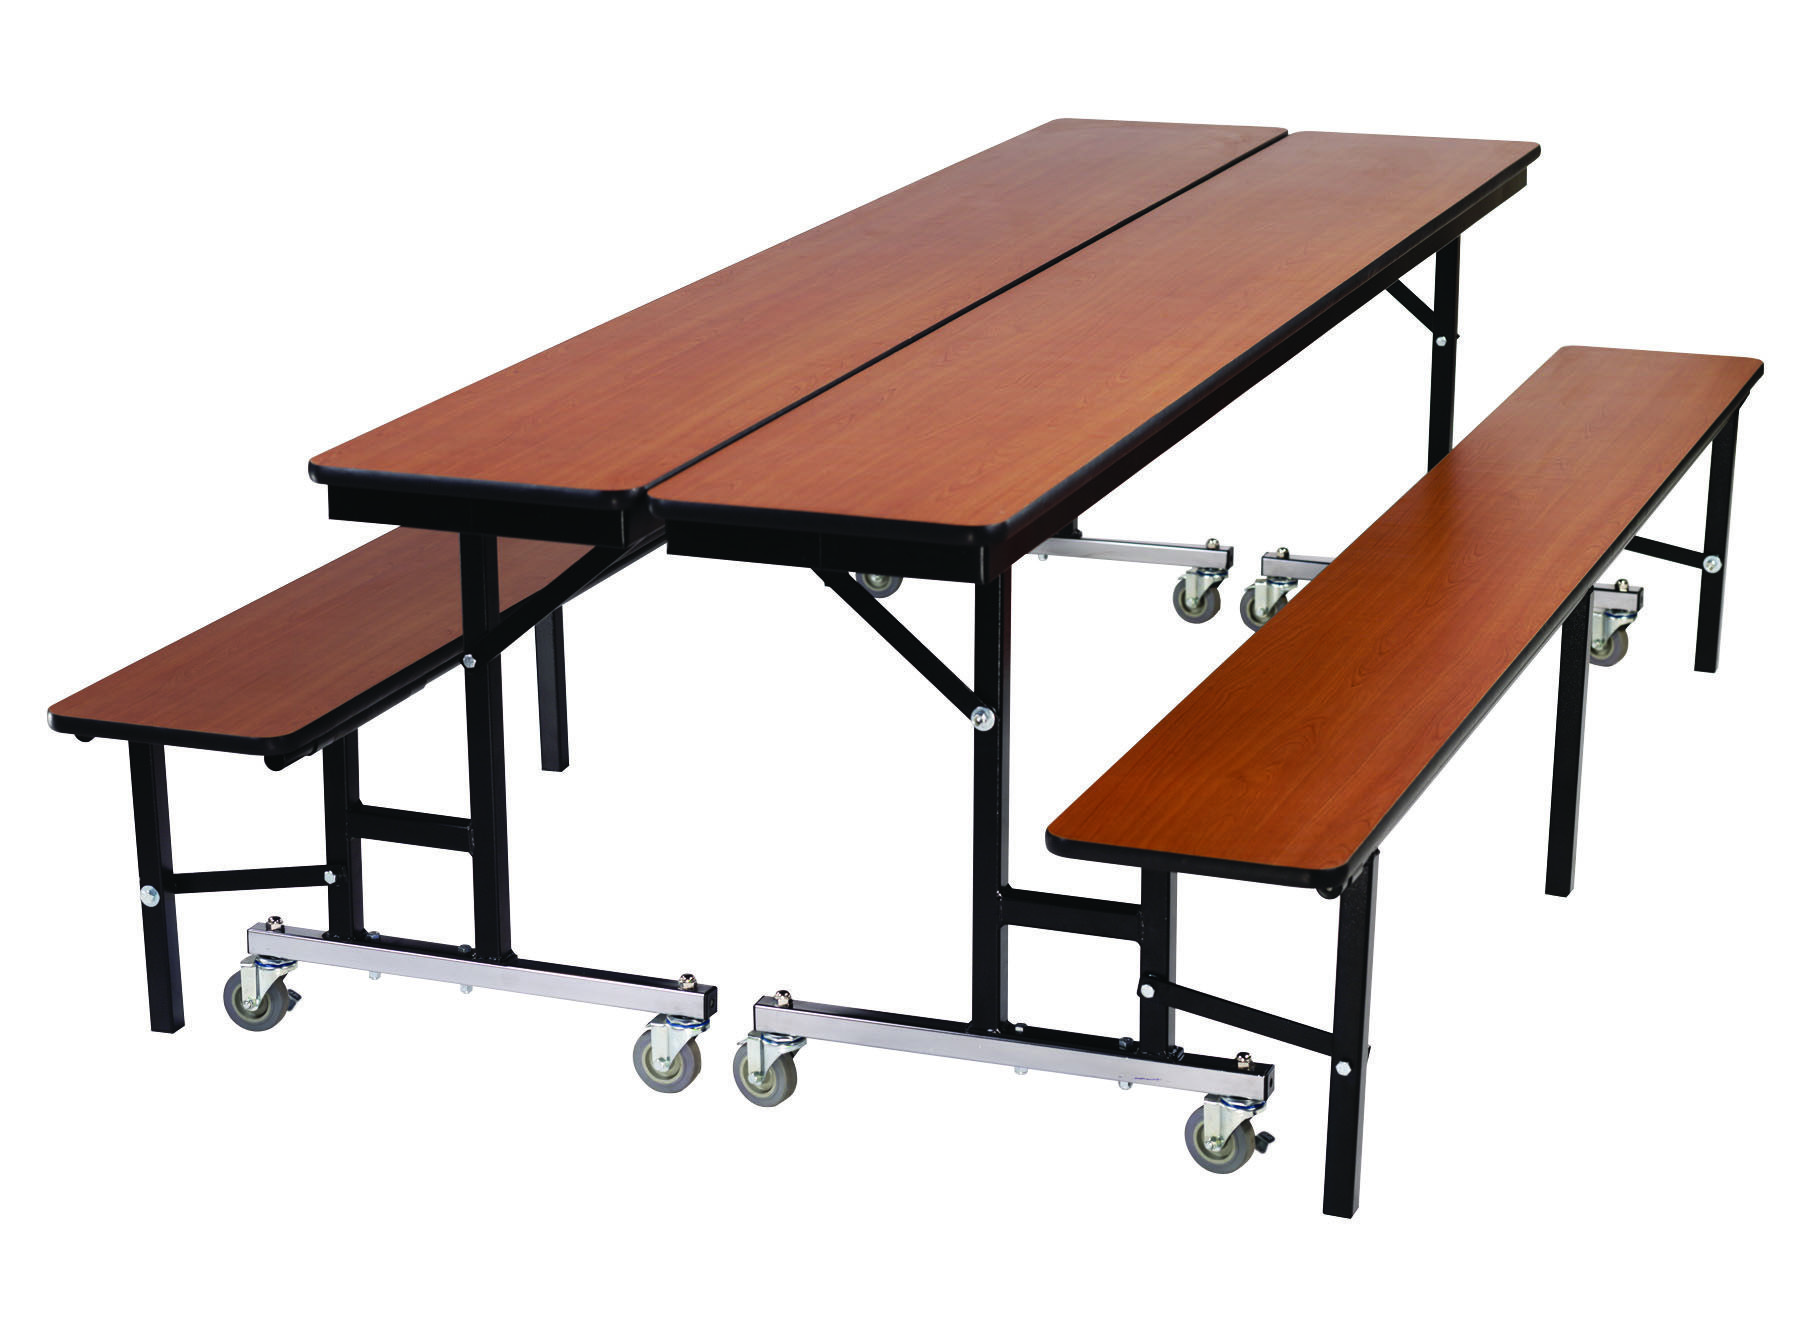 The Mobile Convertible Bench Is A Education Facility 39 S Best Piece Of Furniture Cafeteria Table Convertible Table Mobile Table